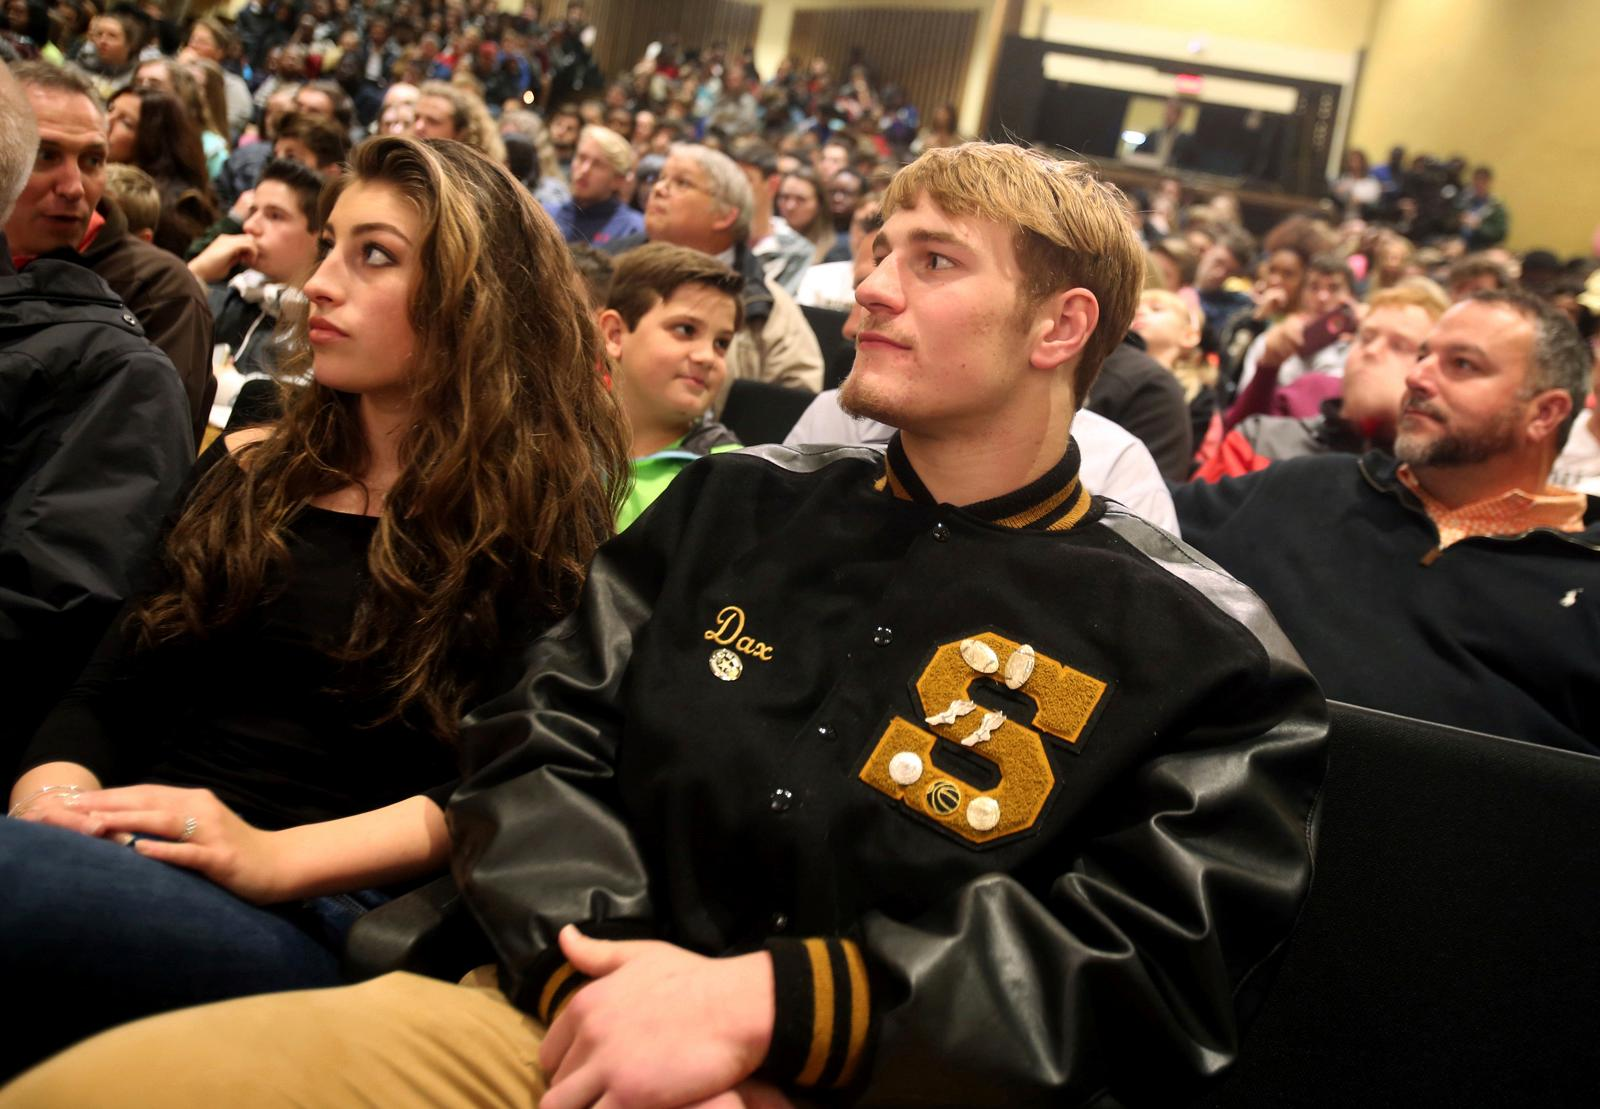 Shelby High School football player Dax Hollifield sits in a full auditorium as he                    waits to reveal his college decision during a signing day event at Shelby High School in Shelby, N.C. Wednesday, Feb. 7, 2018. Hollifield chose to attend Virginia Tech. (Brittany Randolph/The Star via AP)